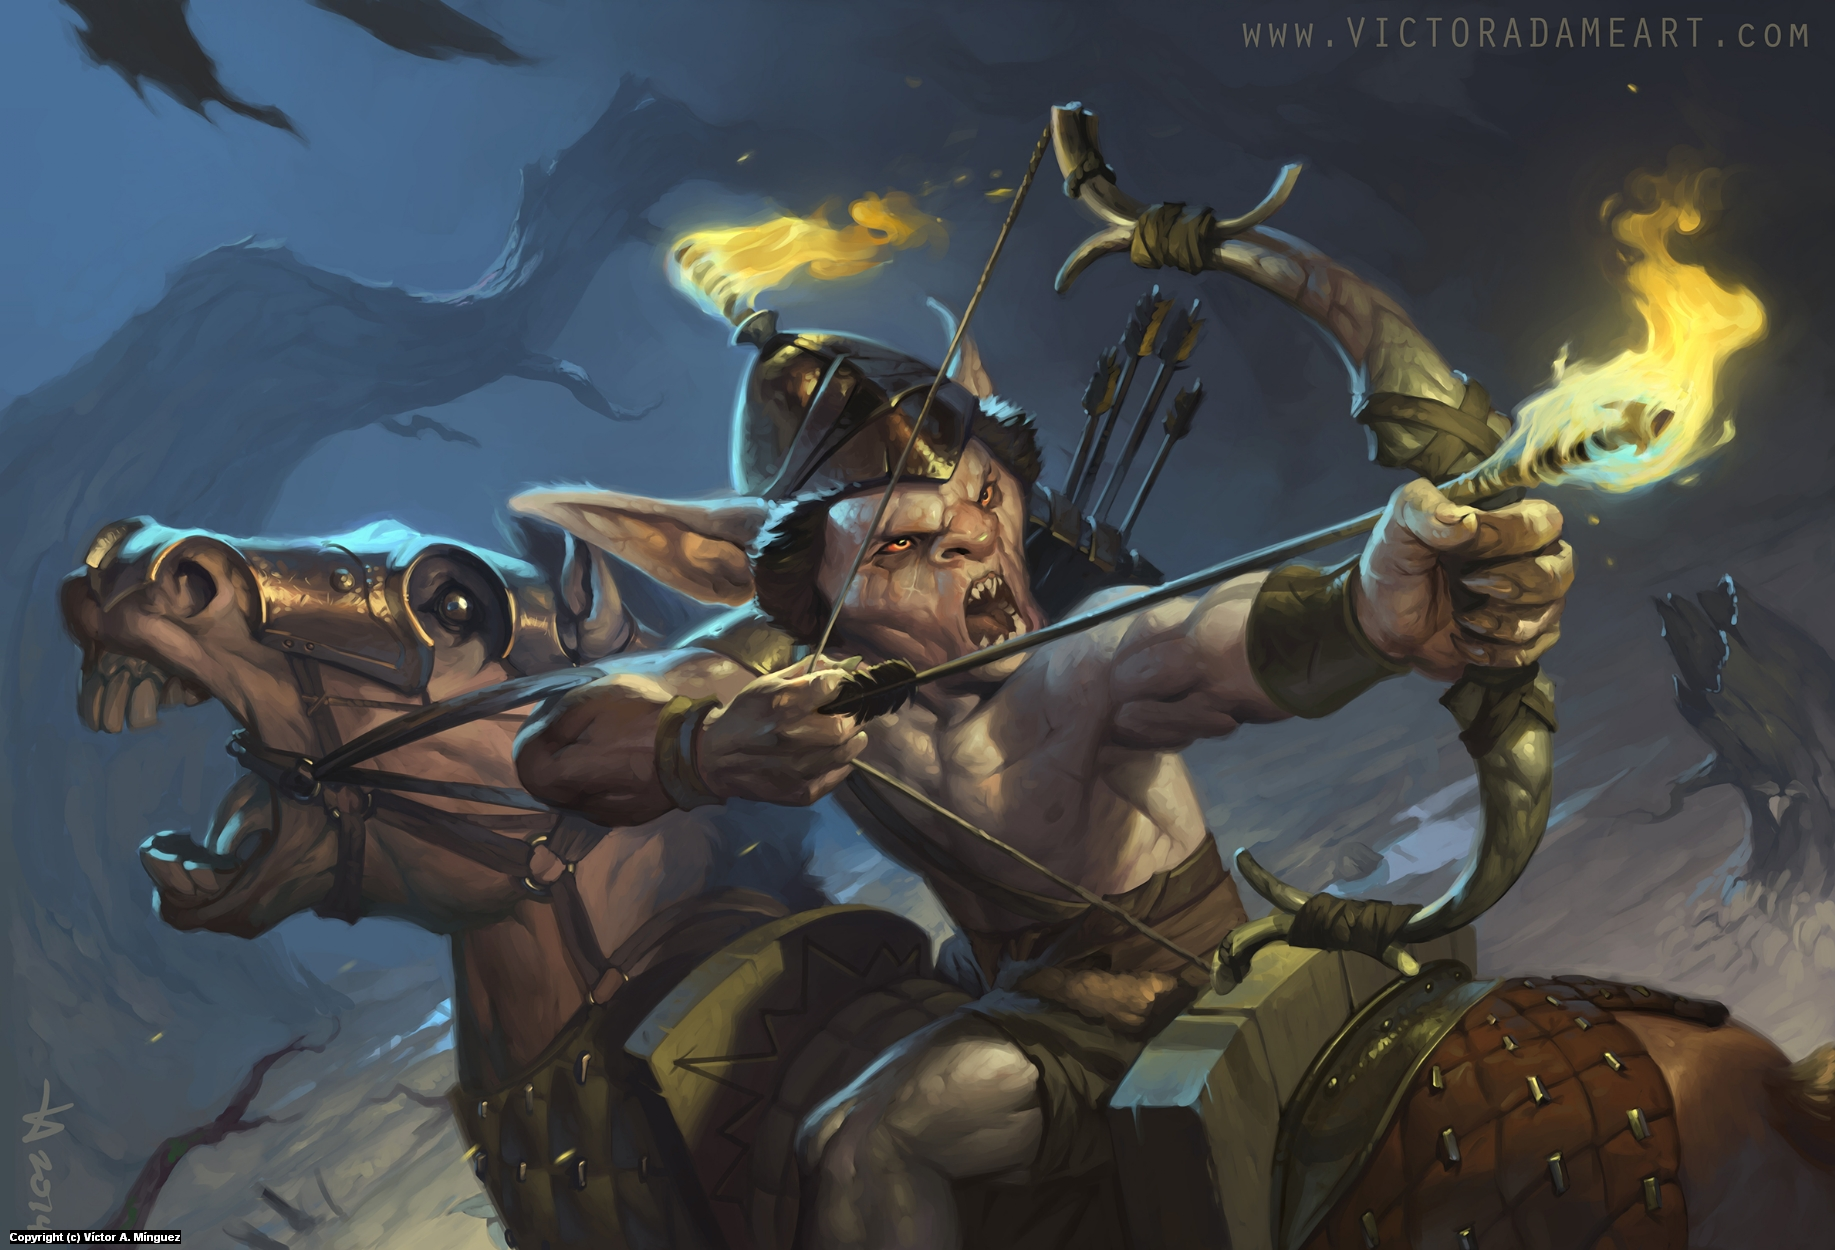 Mongobo Artwork by Victor Adame